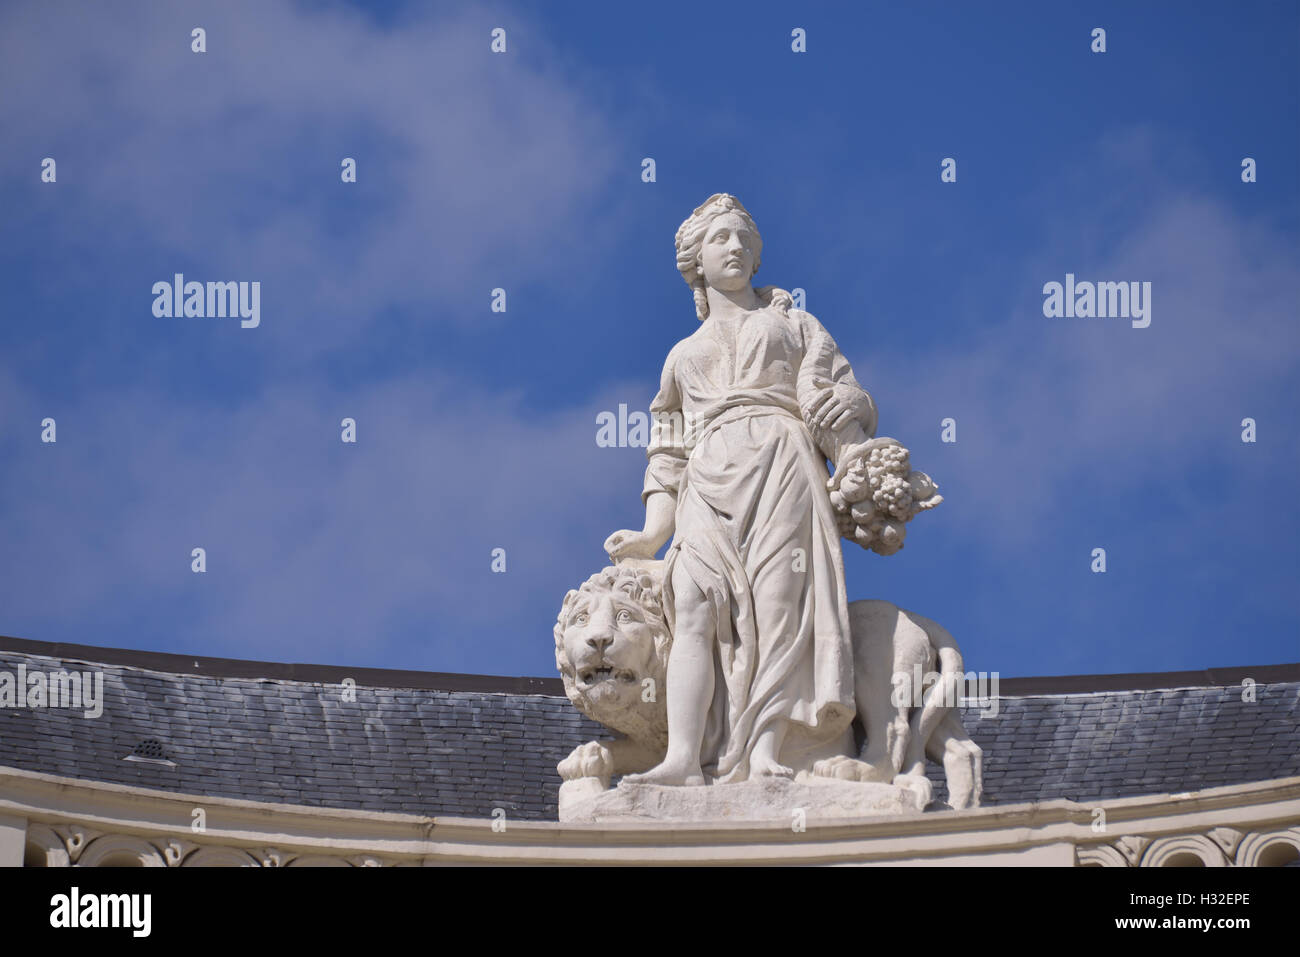 Allegory statue decorating roof of museum building Protestant Church in Brussels, Belgium - Stock Image